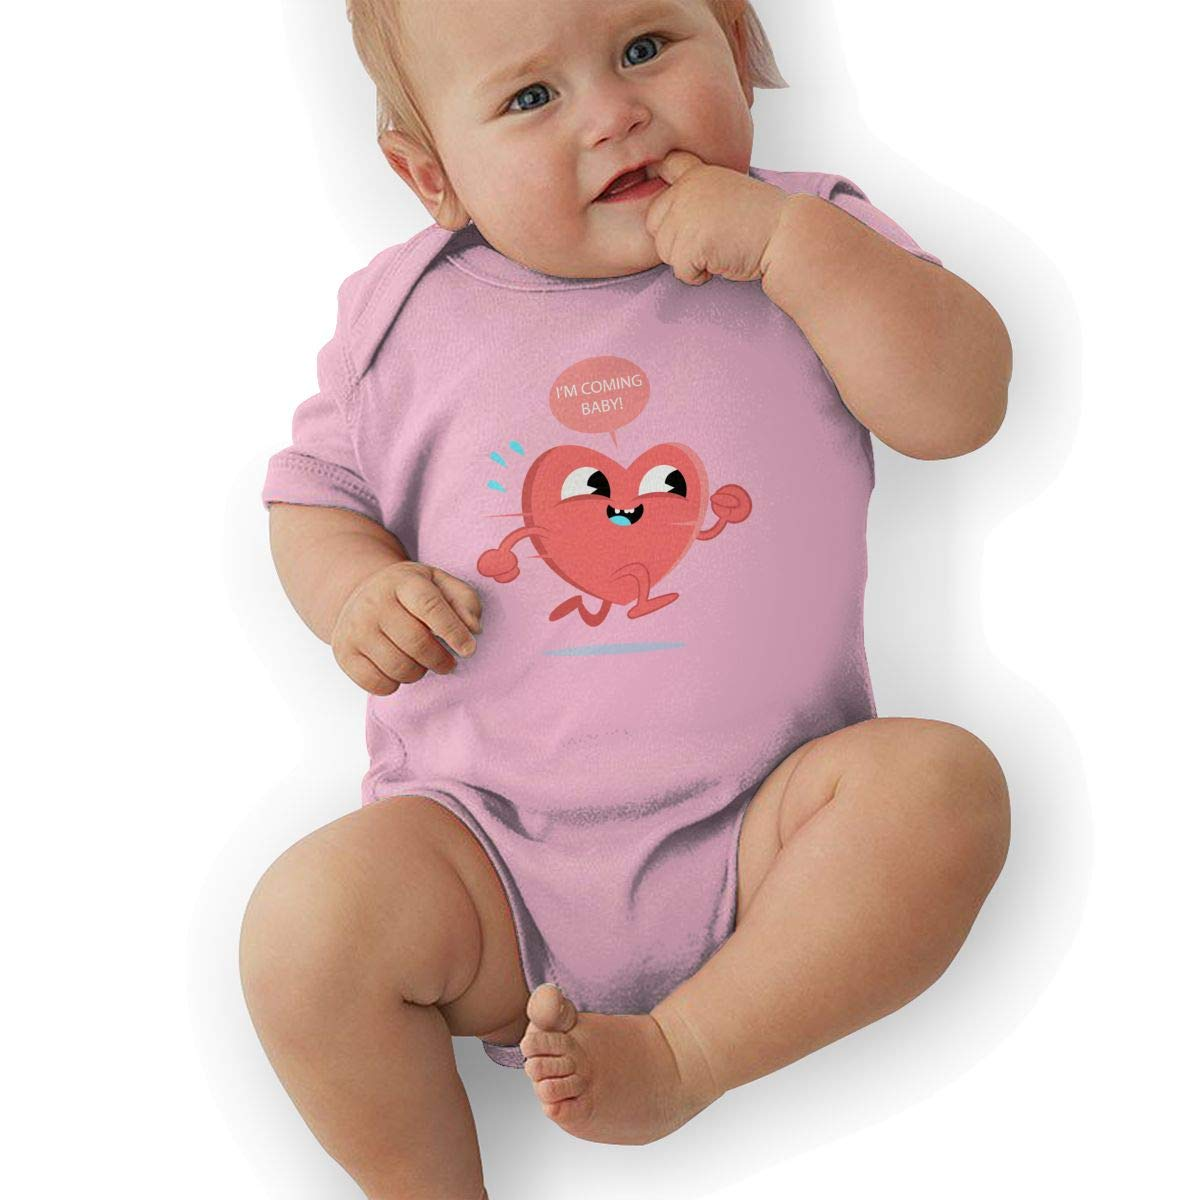 Infant Baby Girls Bodysuit Short-Sleeve Onesie Im Coming Baby Print Jumpsuit Autumn Pajamas